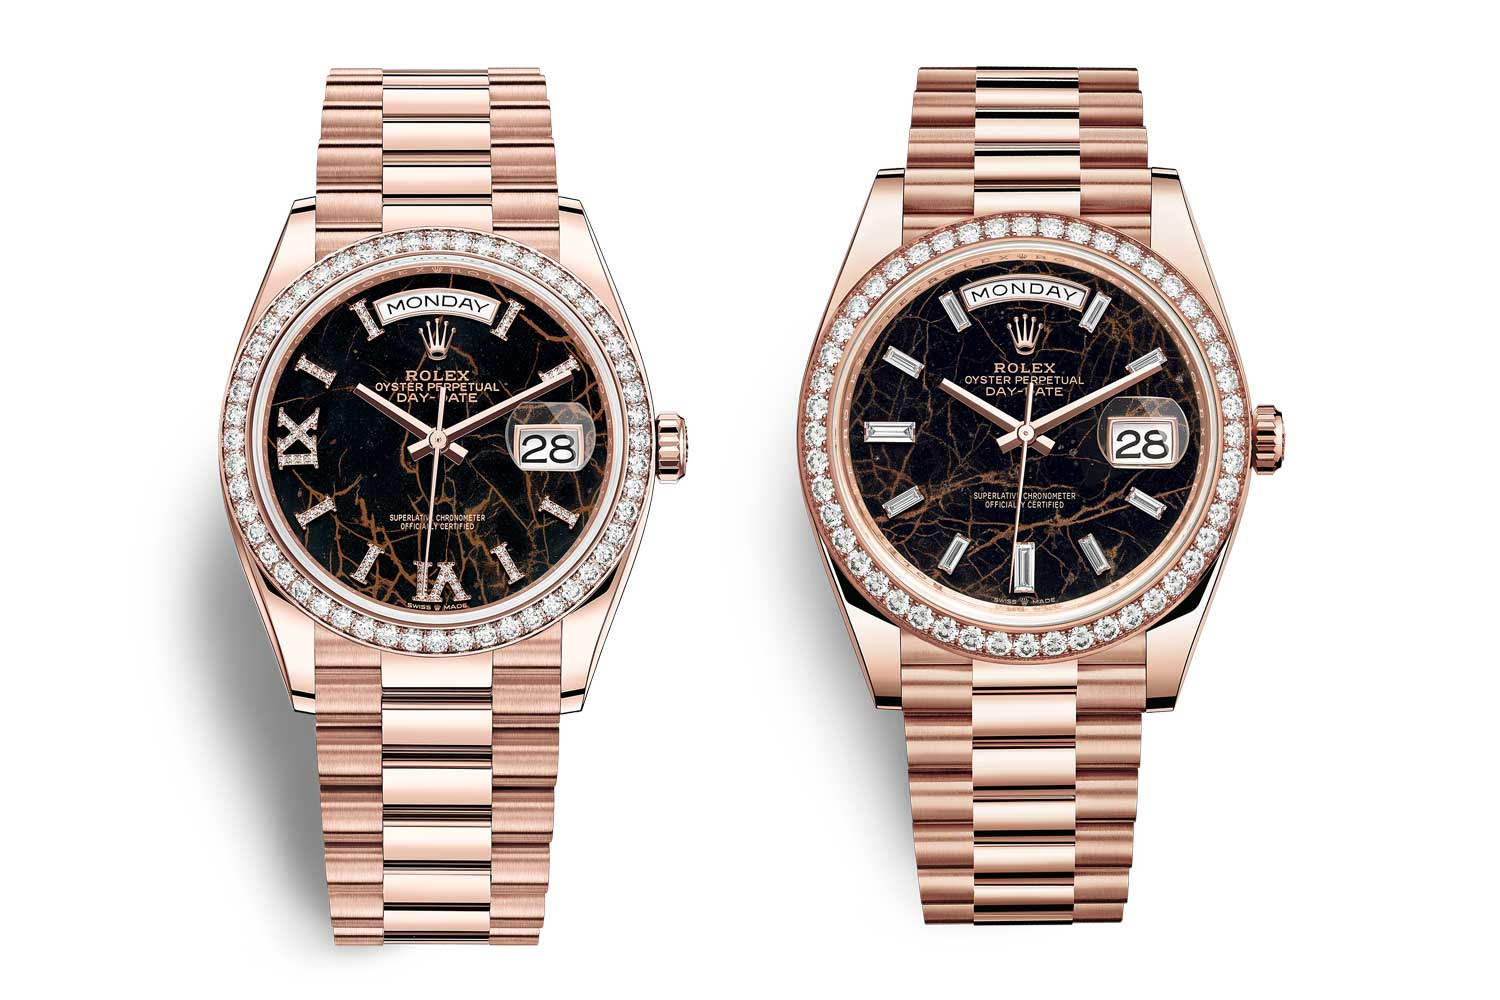 Seen here are the 36 and 40mm version of the 2021 eisenkiesel stone dial Day-Dates with diamond set bezels